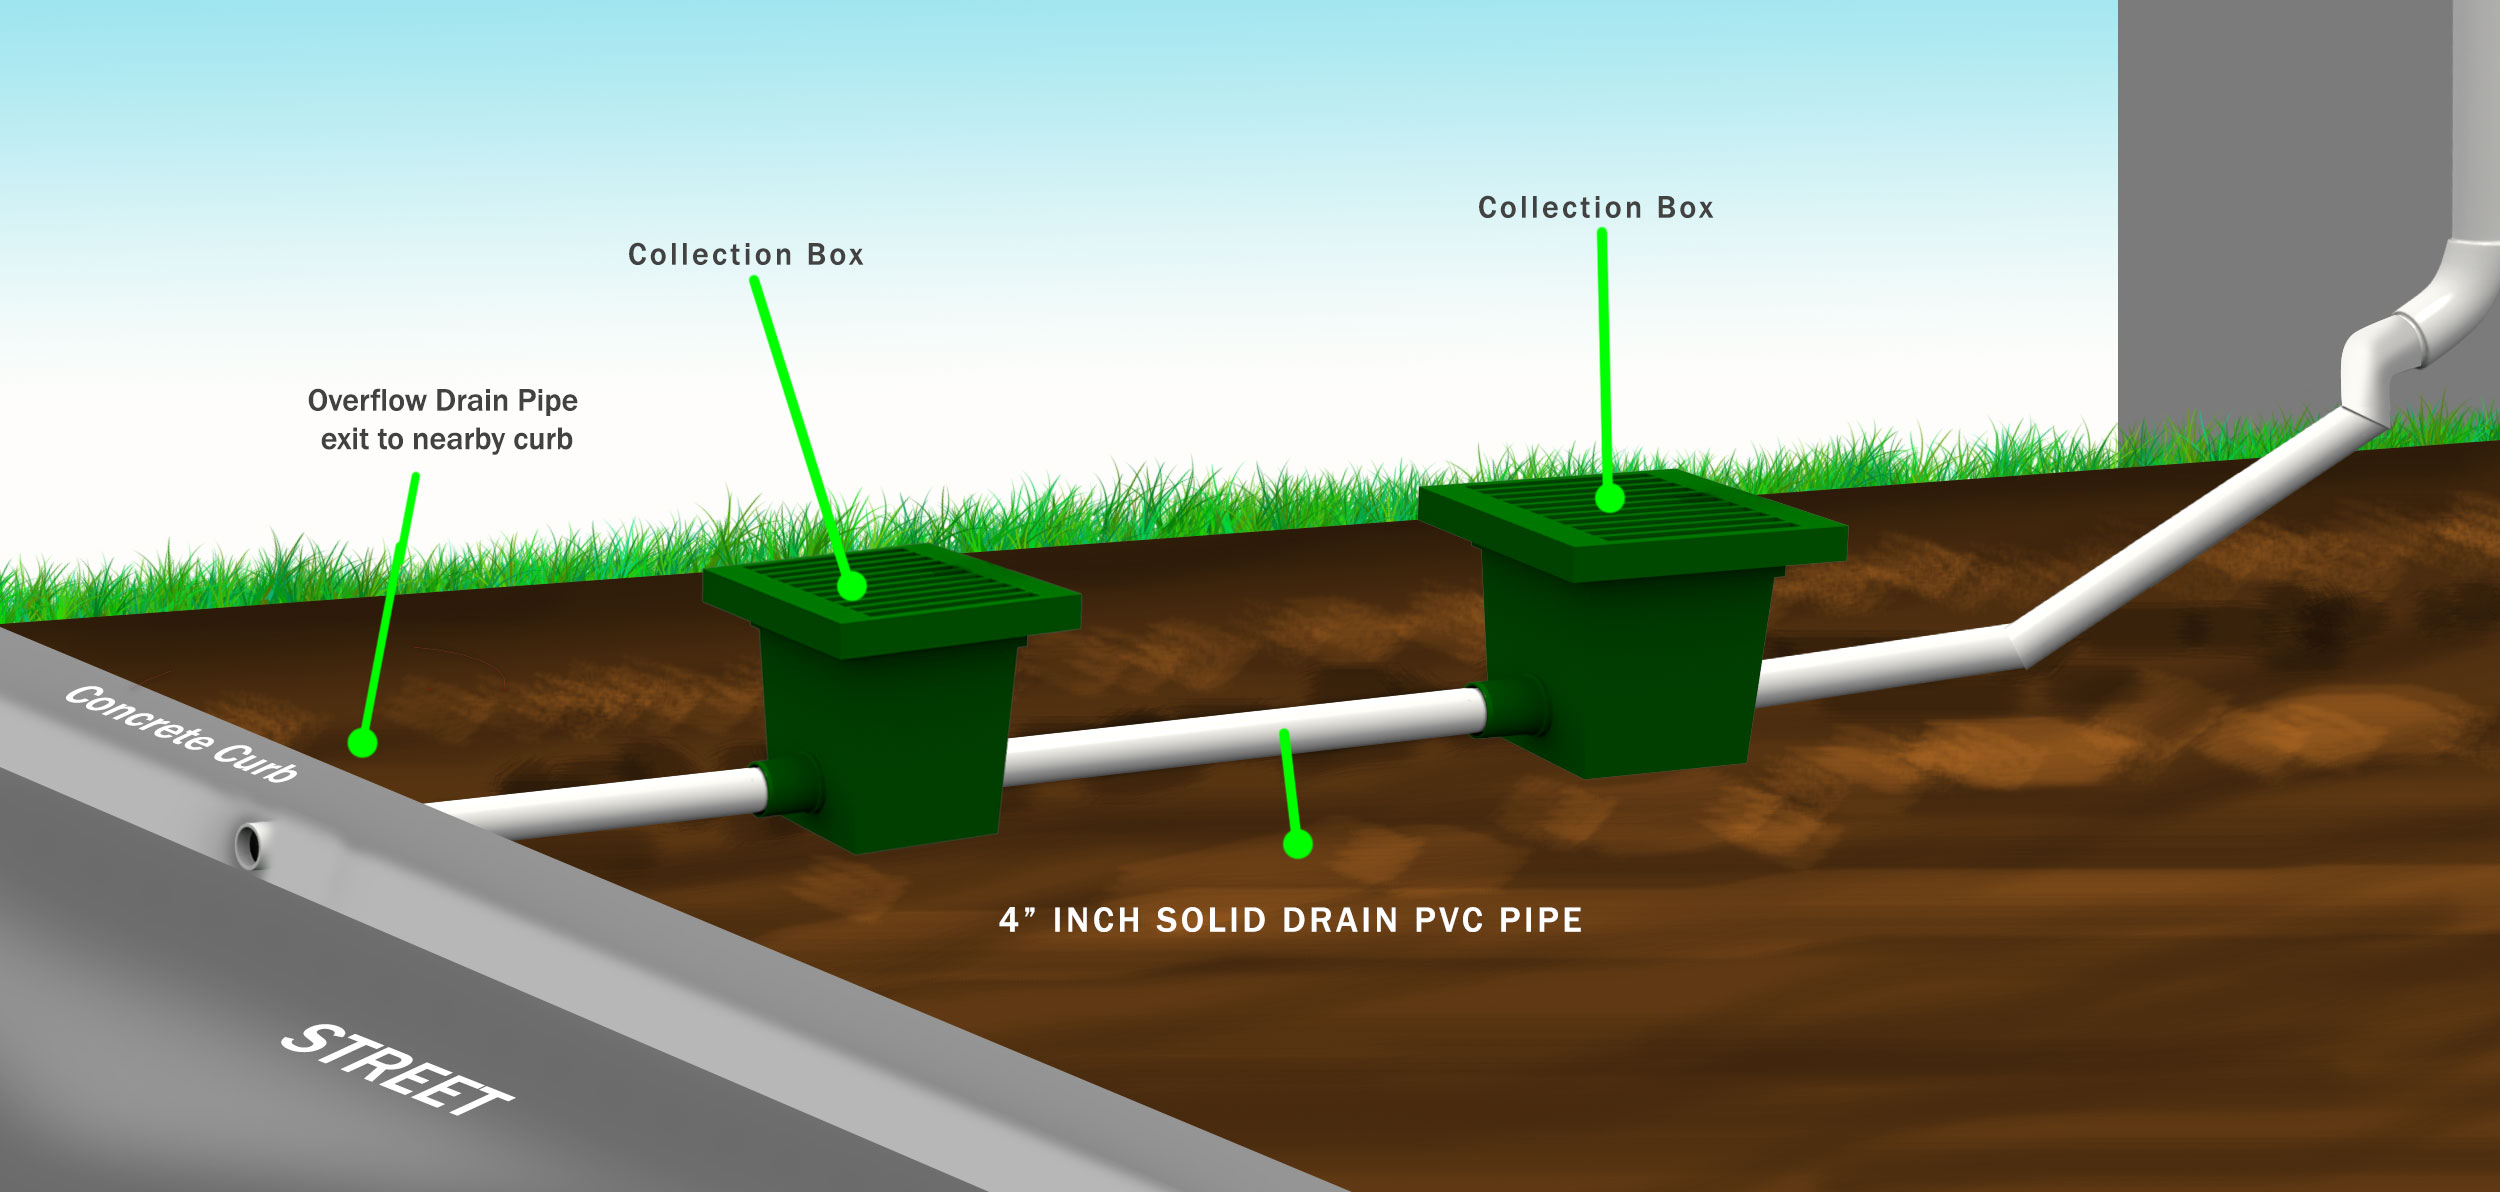 3d_DrainPipewithcollectionboxes